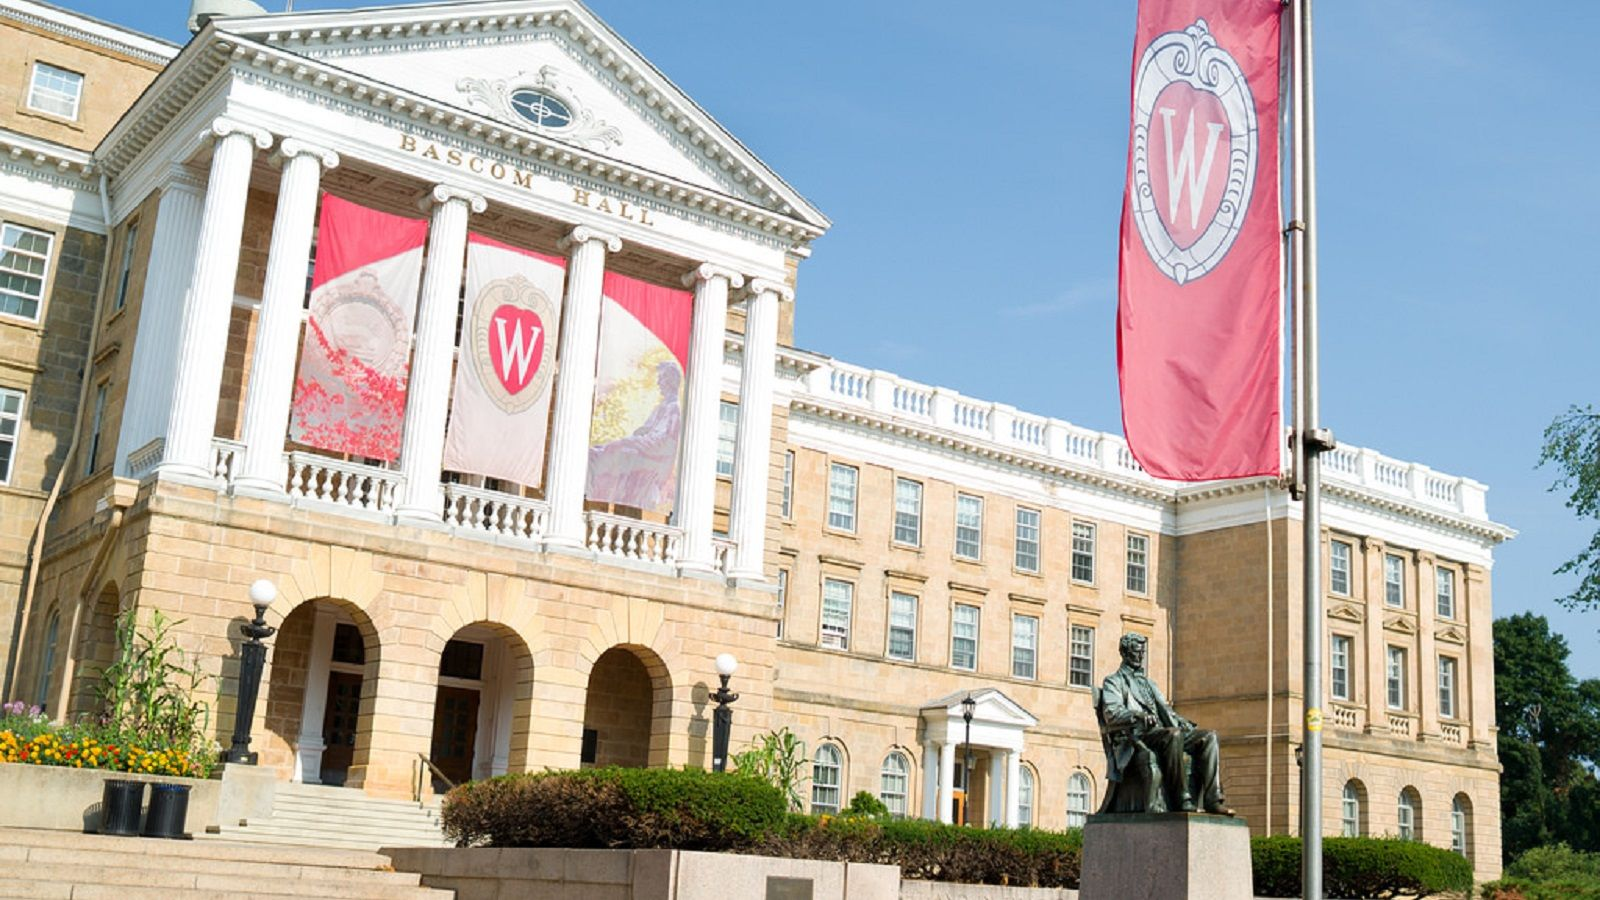 University of Wisconsin Campus